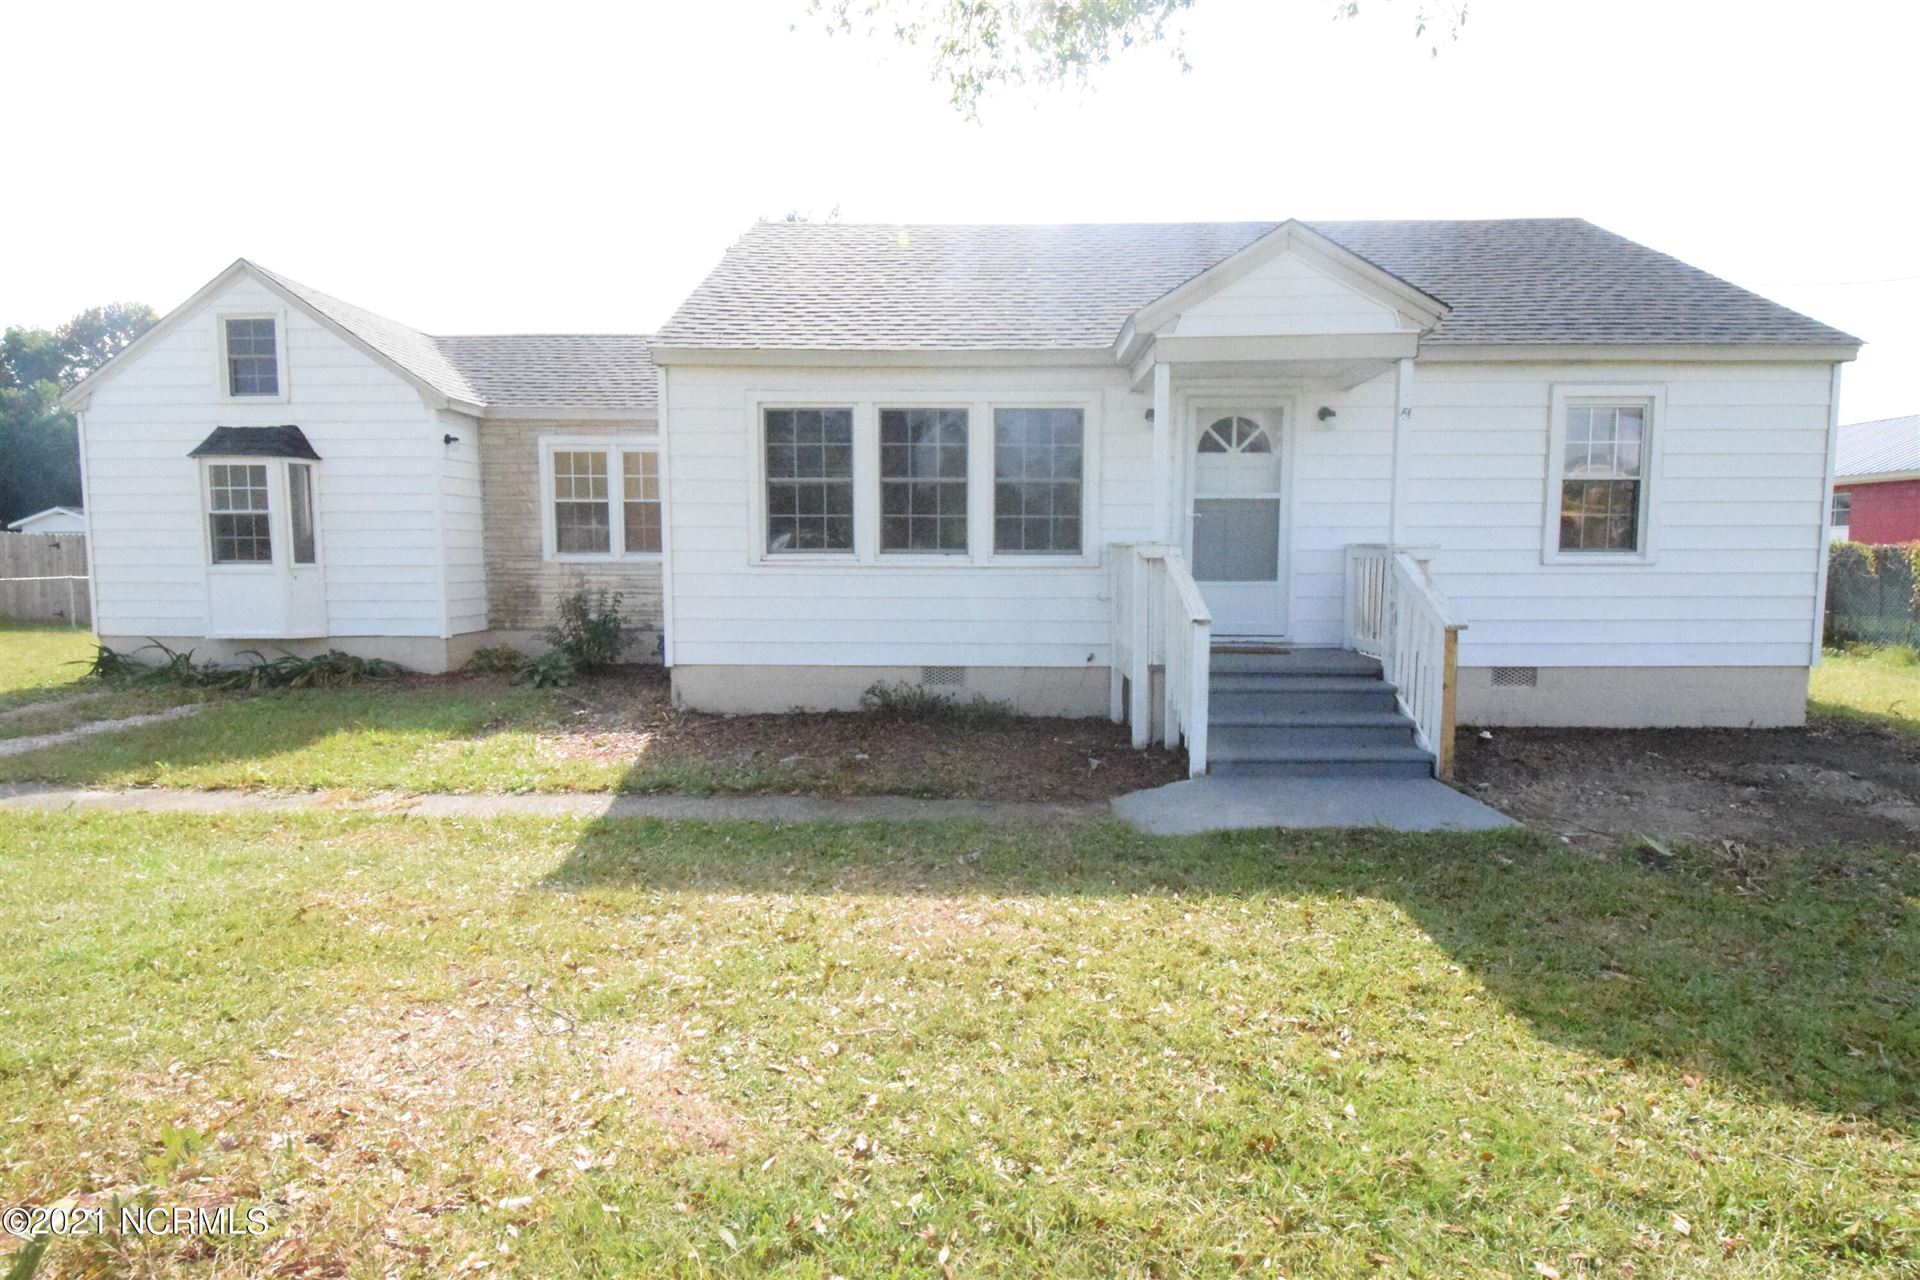 Photo of 104 Forest Hill Drive, Havelock, NC 28532 (MLS # 100296387)